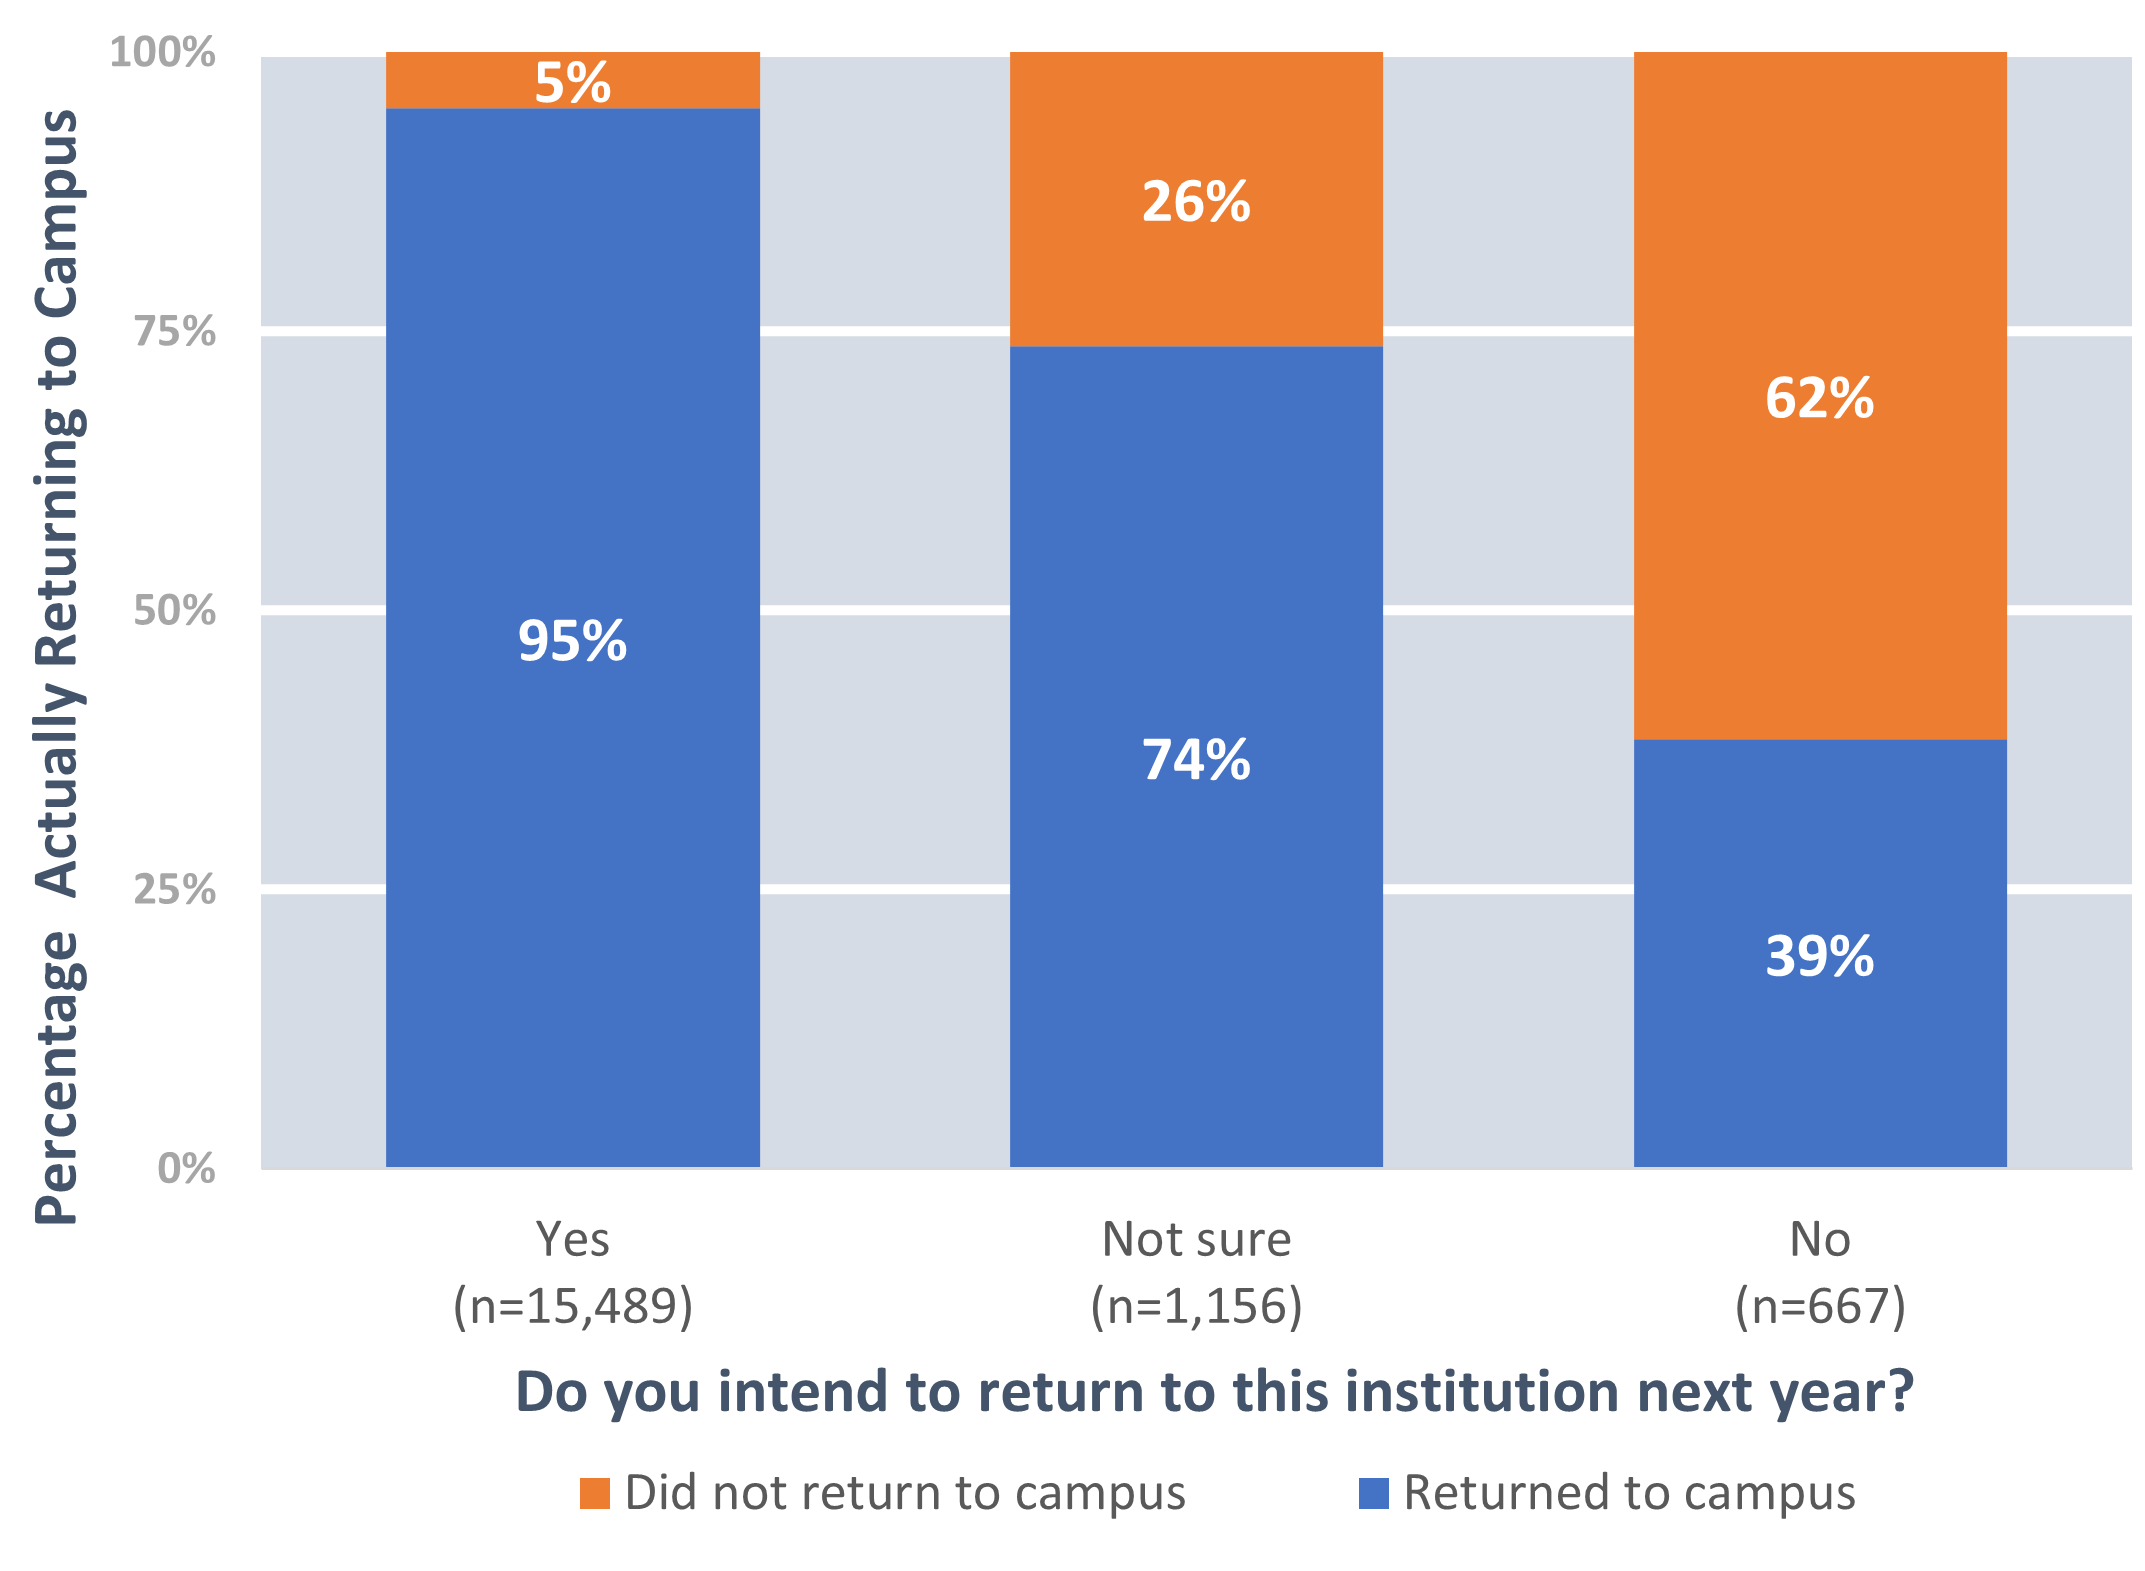 The Relationship Between Persistence and Intention to Return